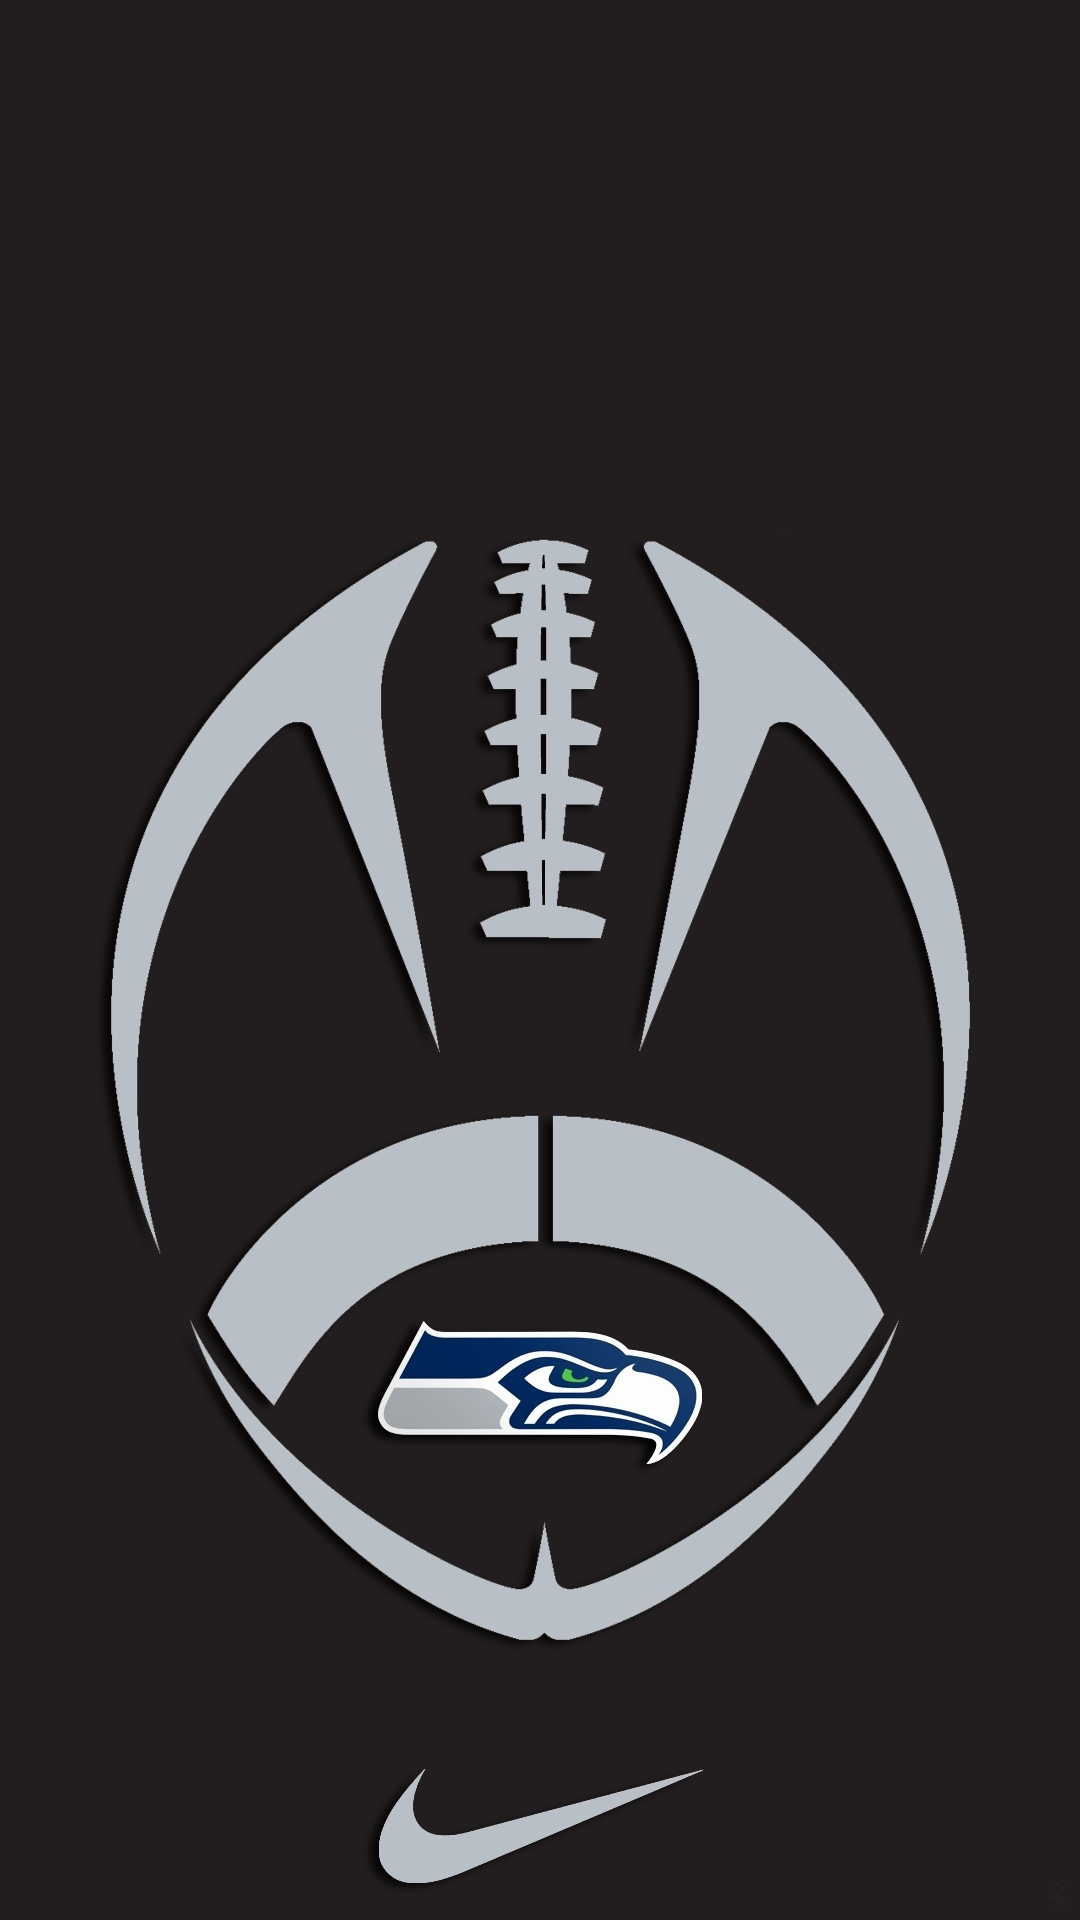 10 Top Seattle Seahawks Wallpaper Android Full Hd 1080p For Pc